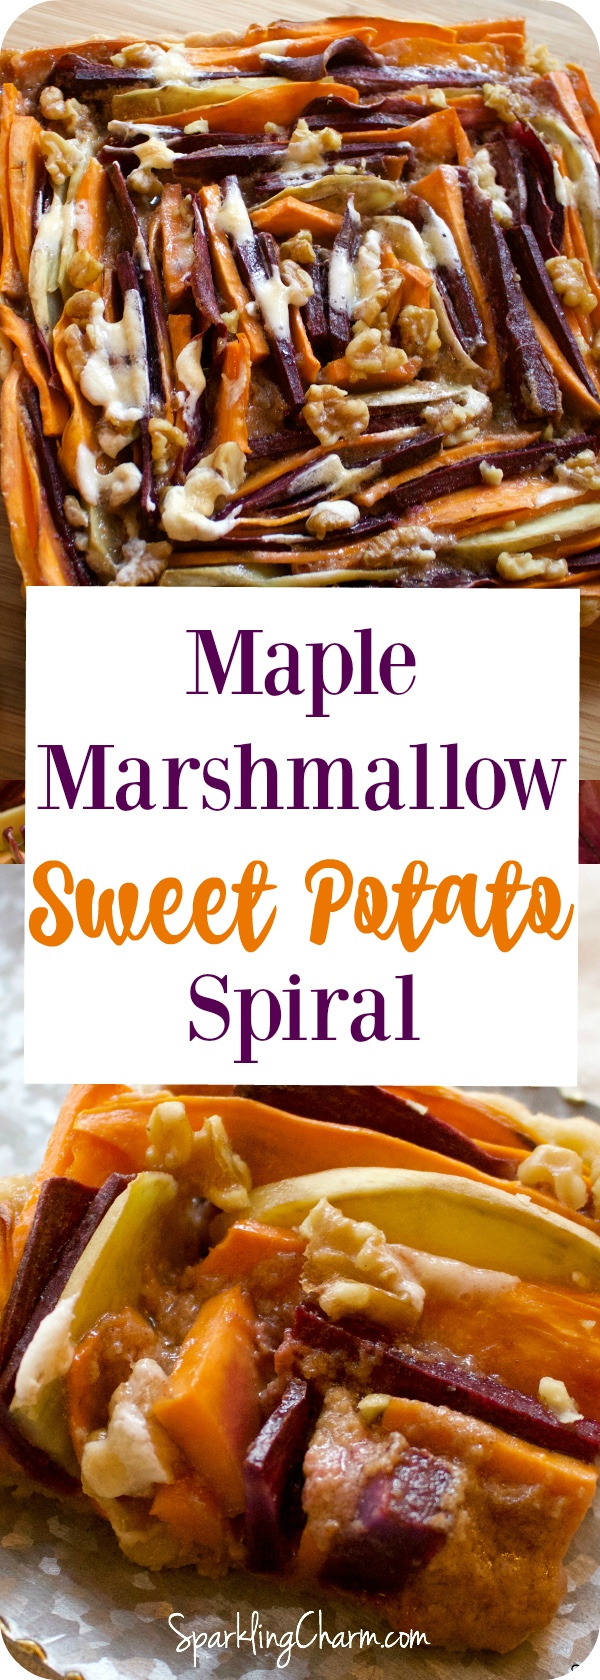 Maple Marshmallow Sweet Potato Spiral